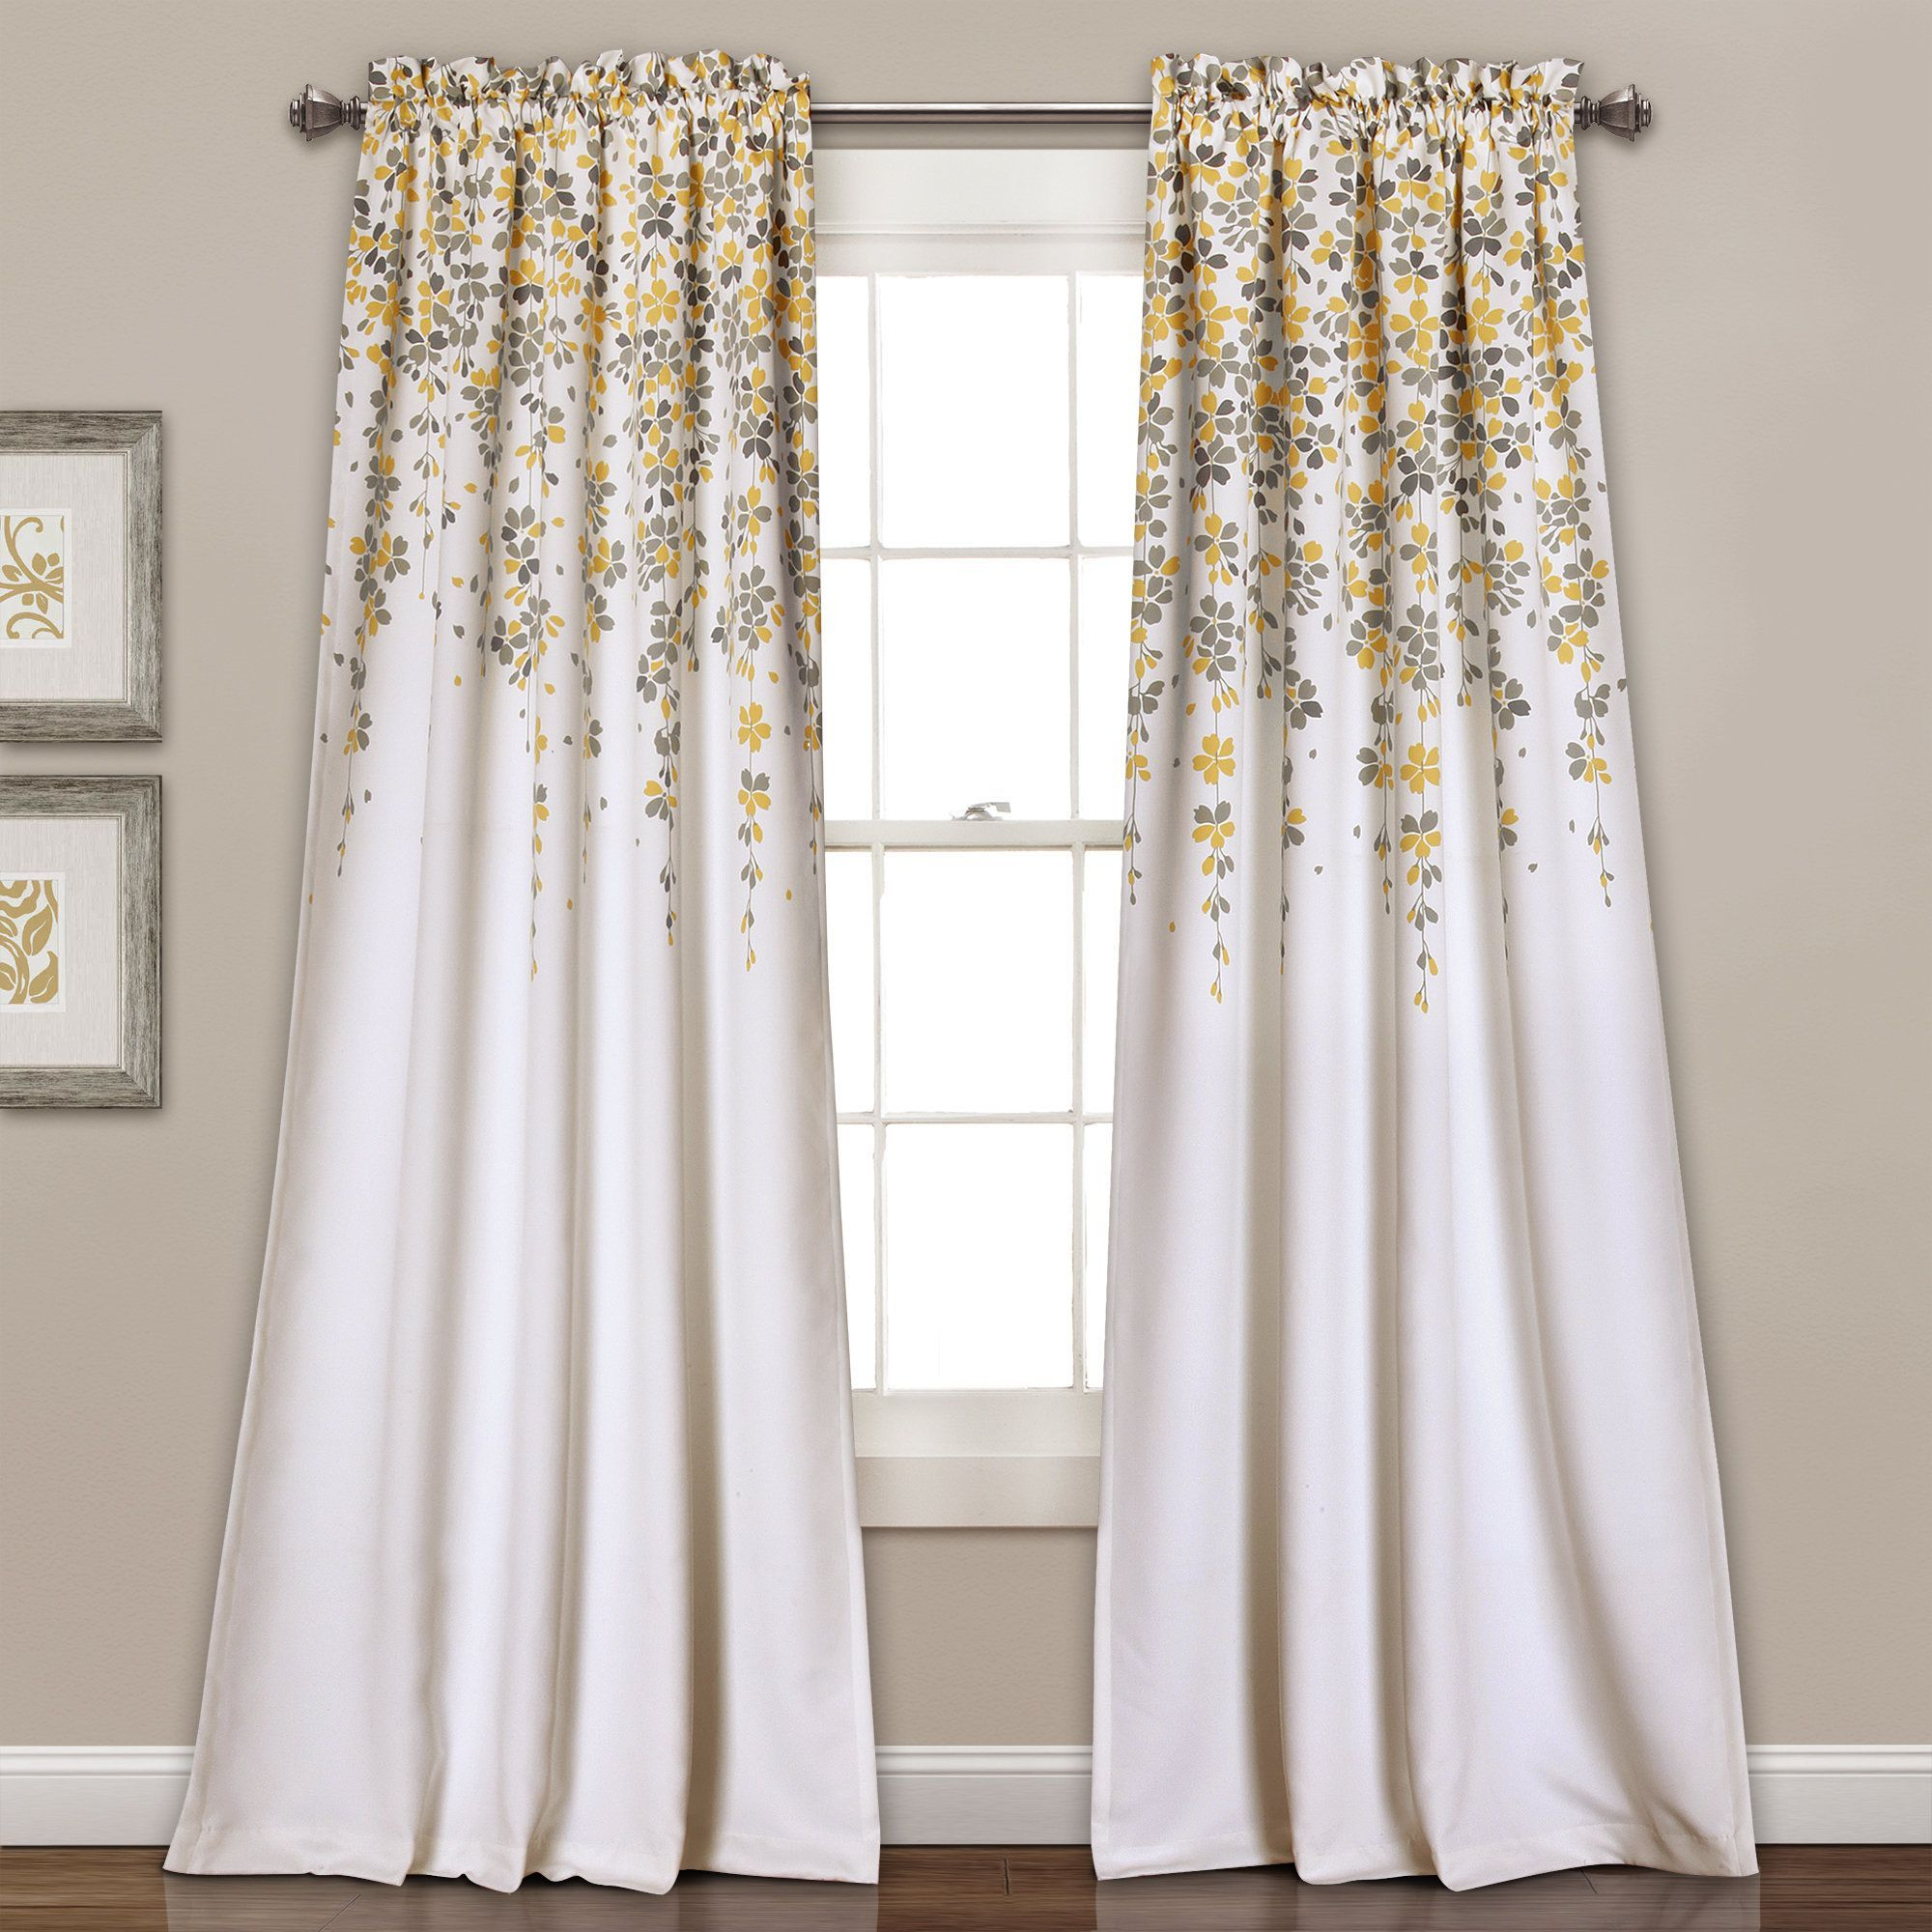 Lush Decor Weeping Flowers Room-Darkening Window Curtain within Floral Pattern Room Darkening Window Curtain Panel Pairs (Image 13 of 20)